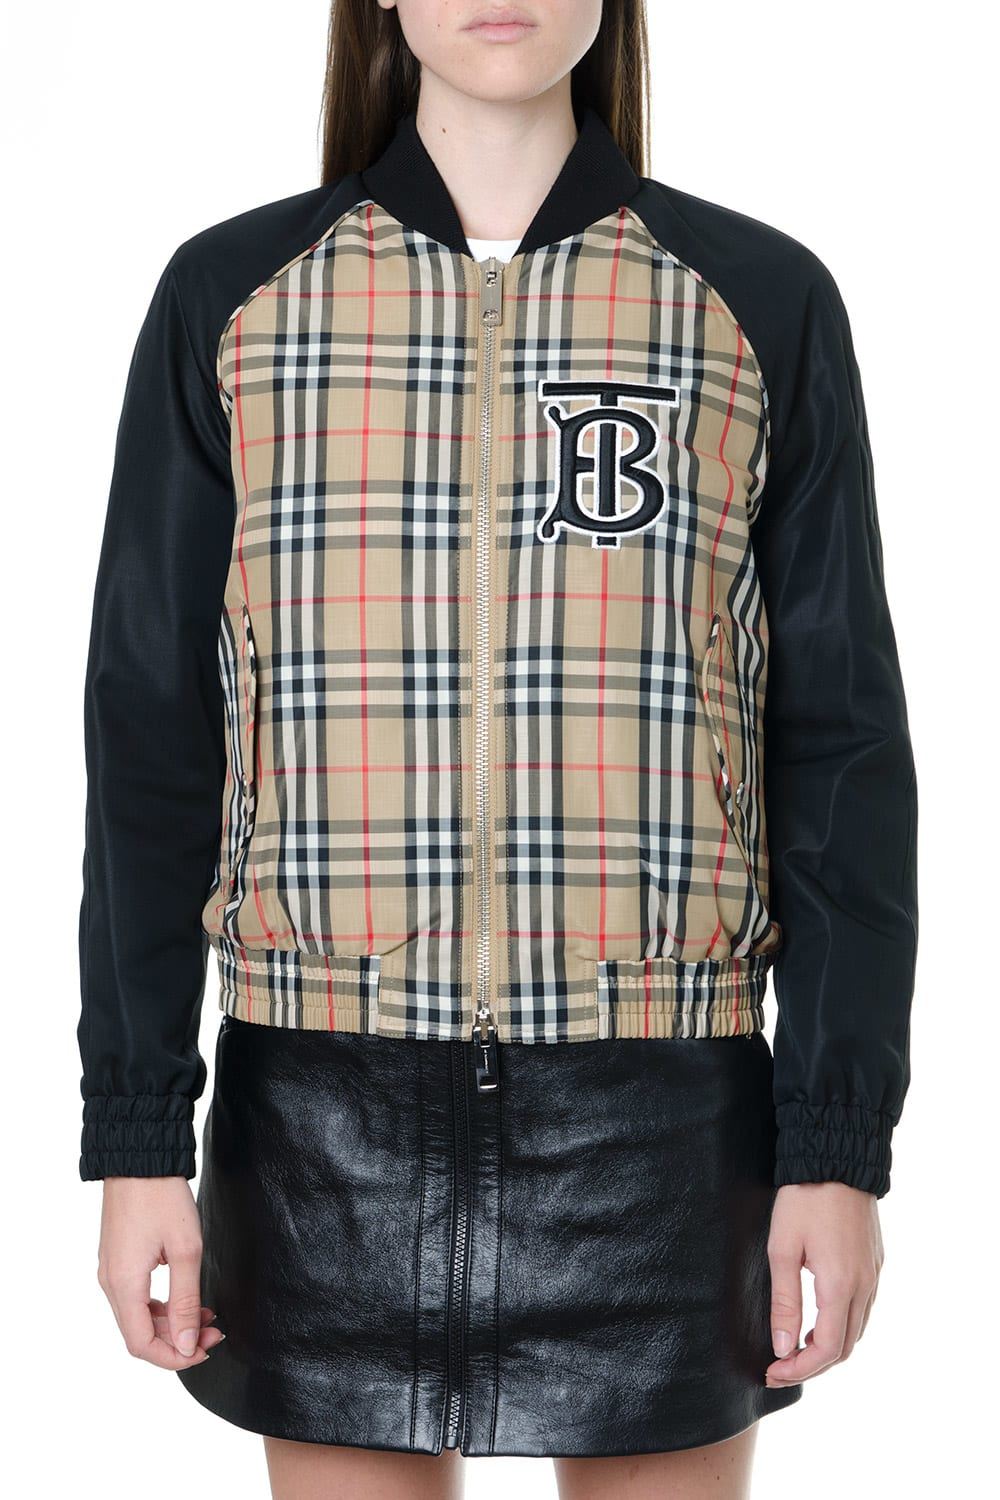 Burberry Beige And Black Monogram Bomber Jacket